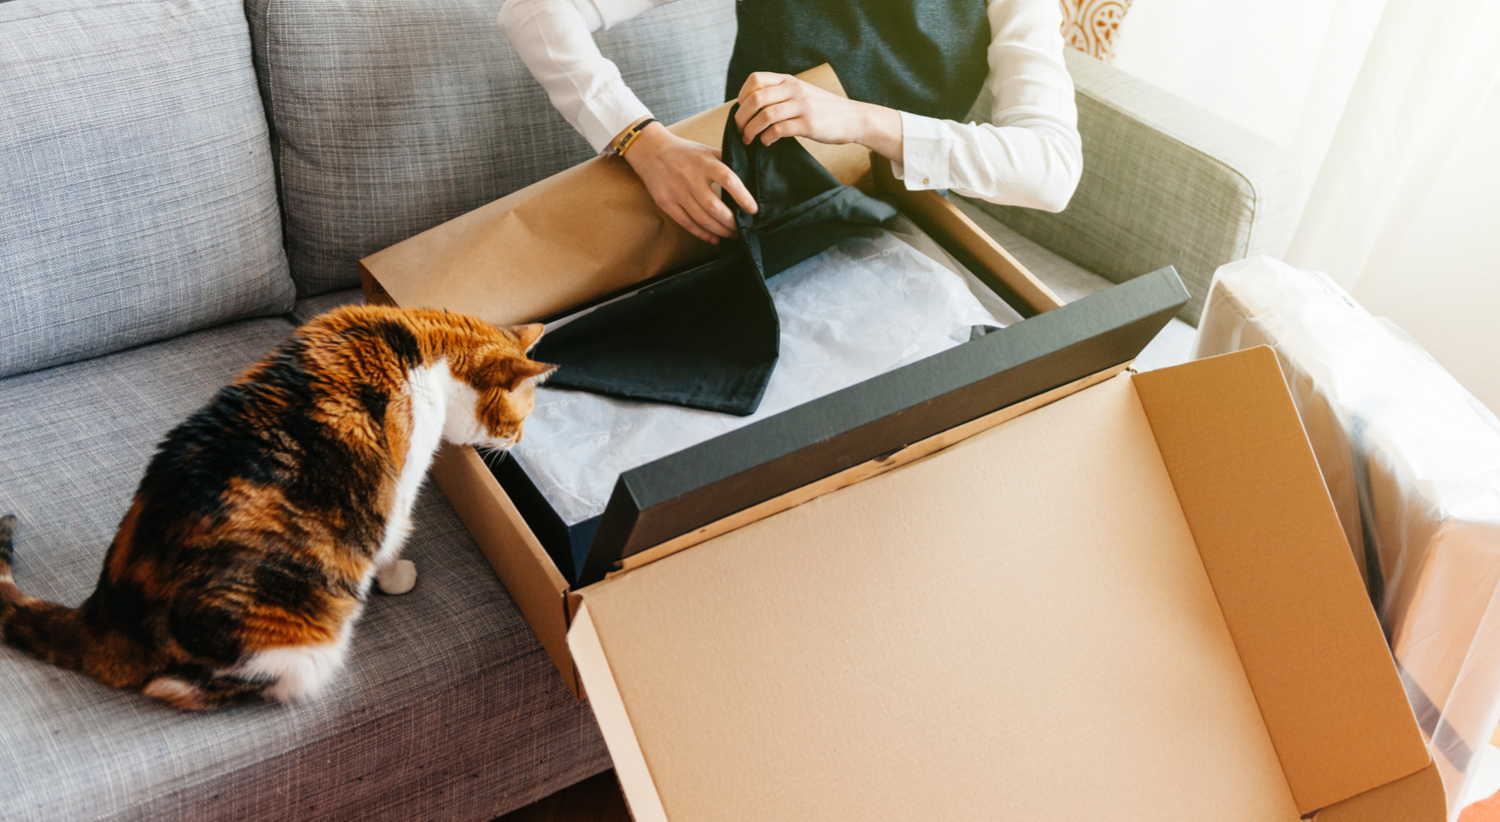 woman and cat with package - property management tech trends 2018